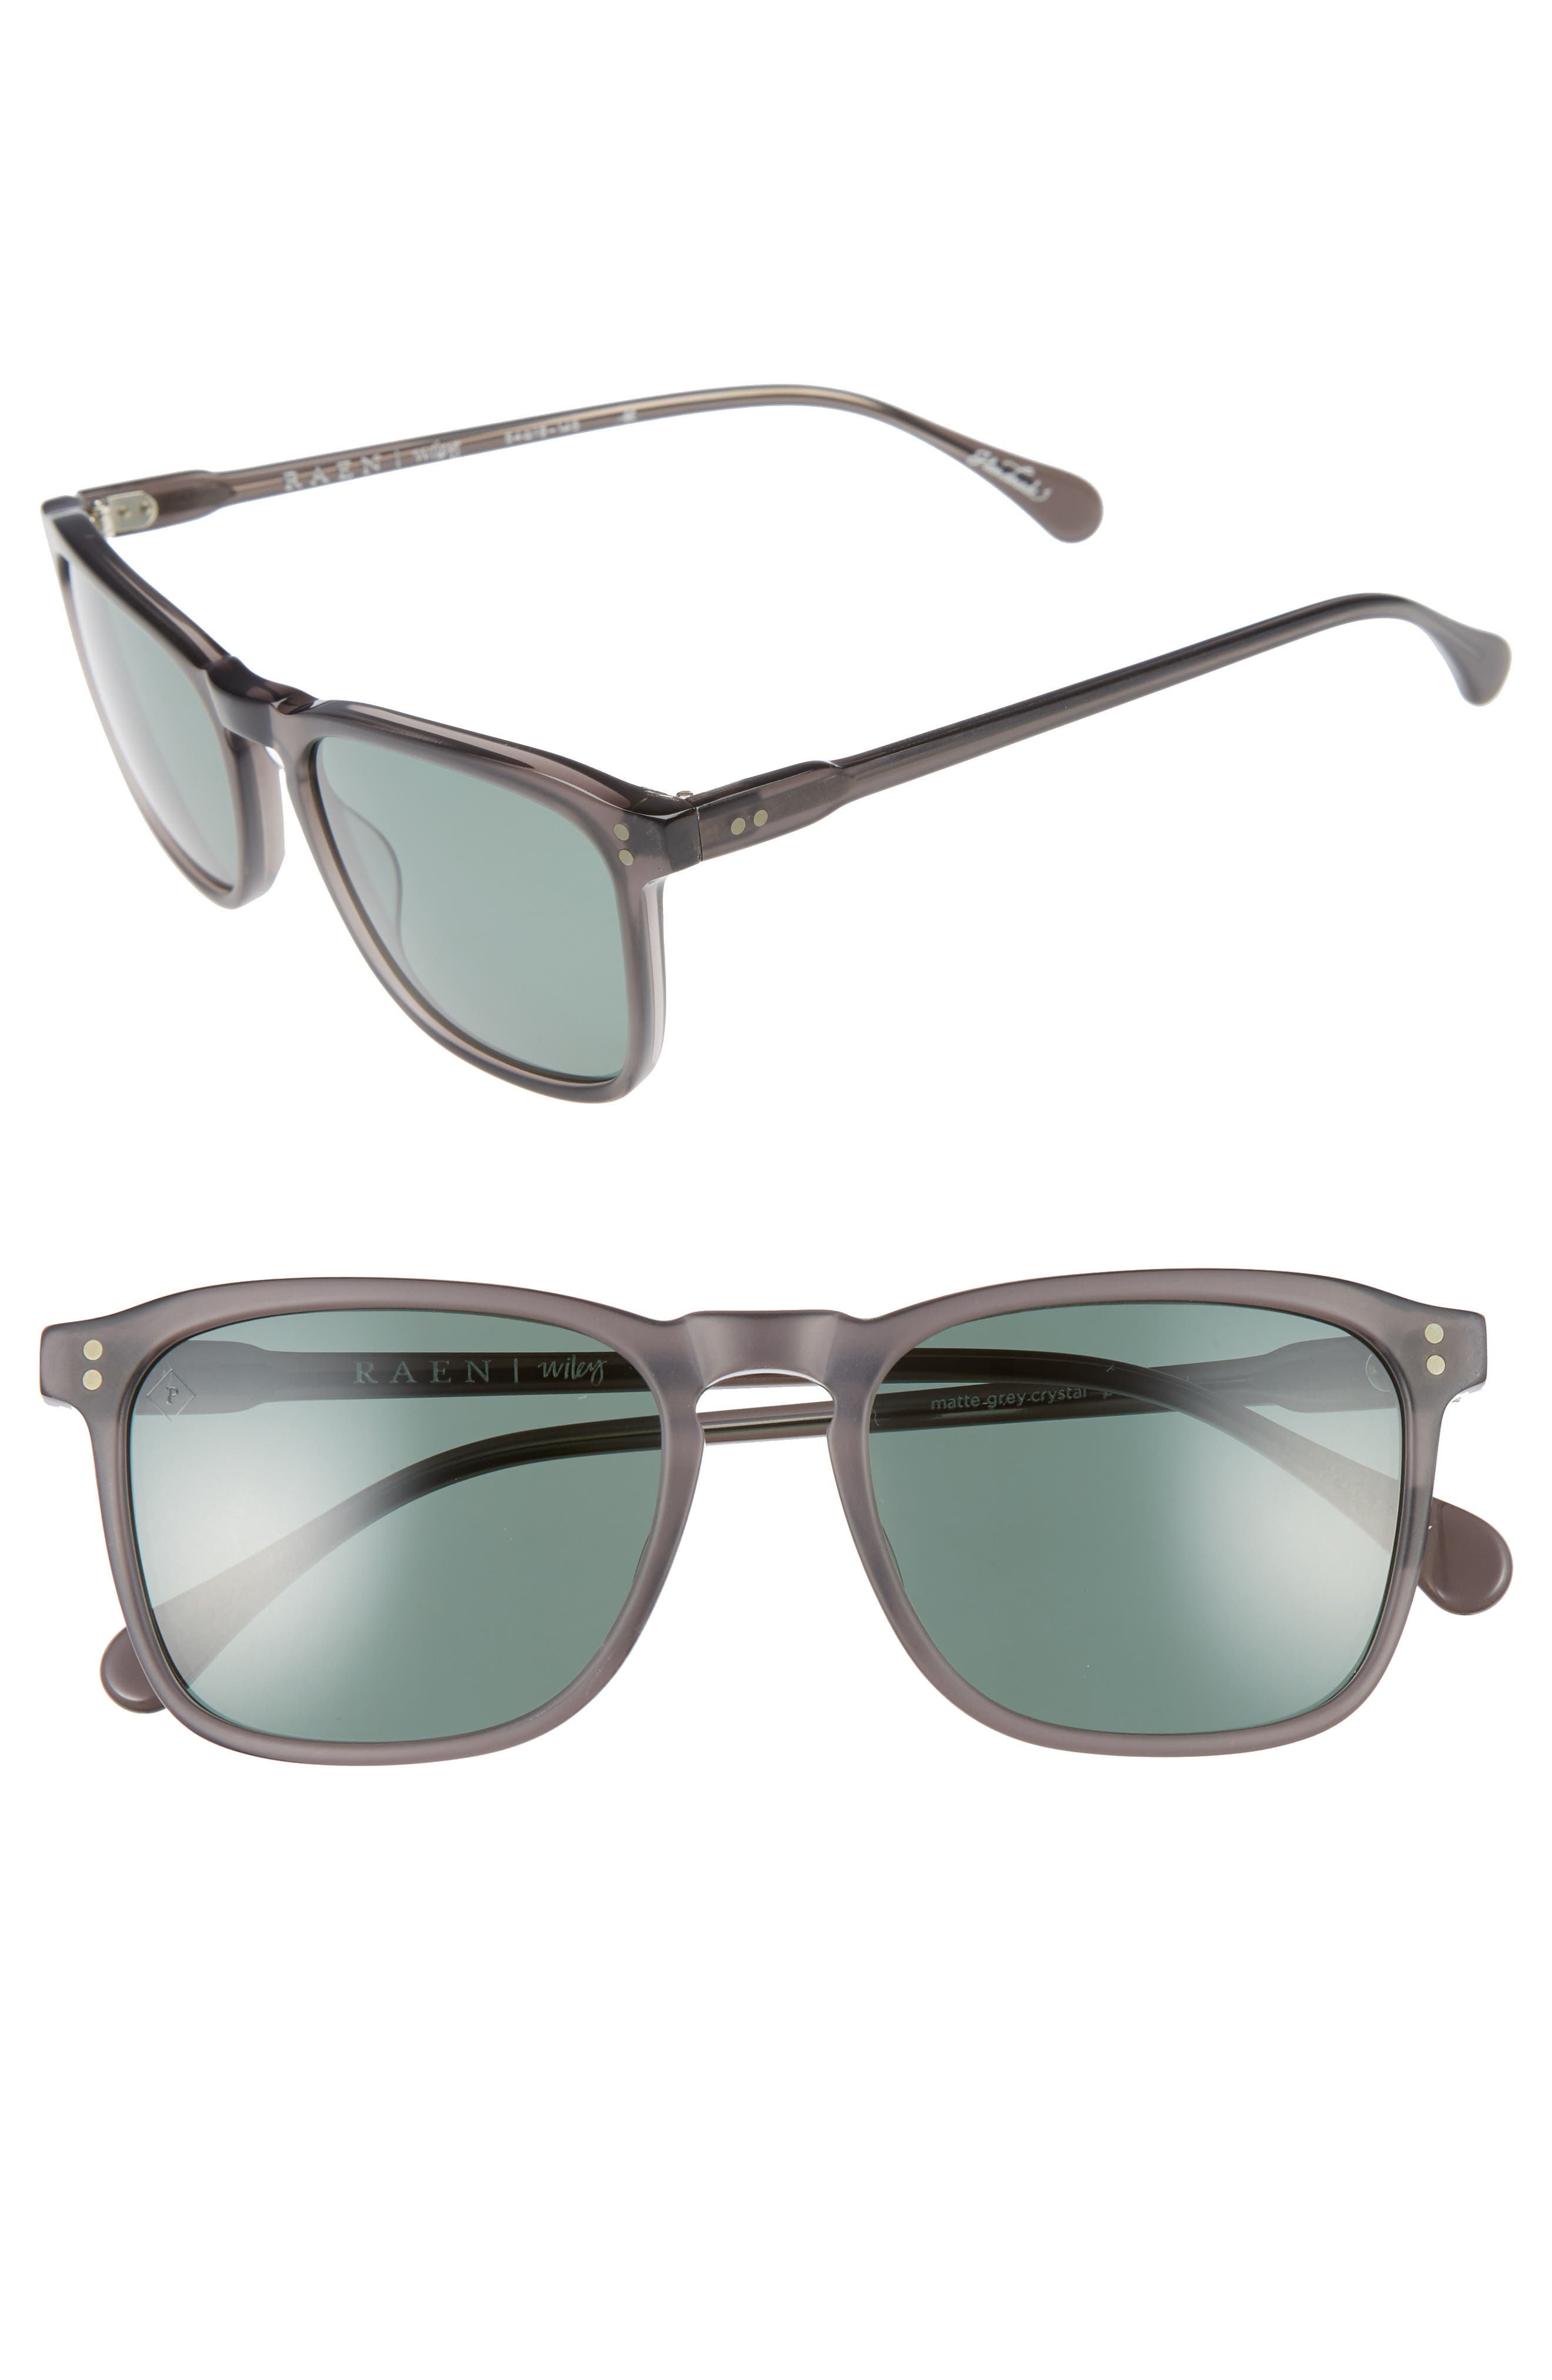 Wiley 54mm Sunglasses,                             Main thumbnail 1, color,                             020